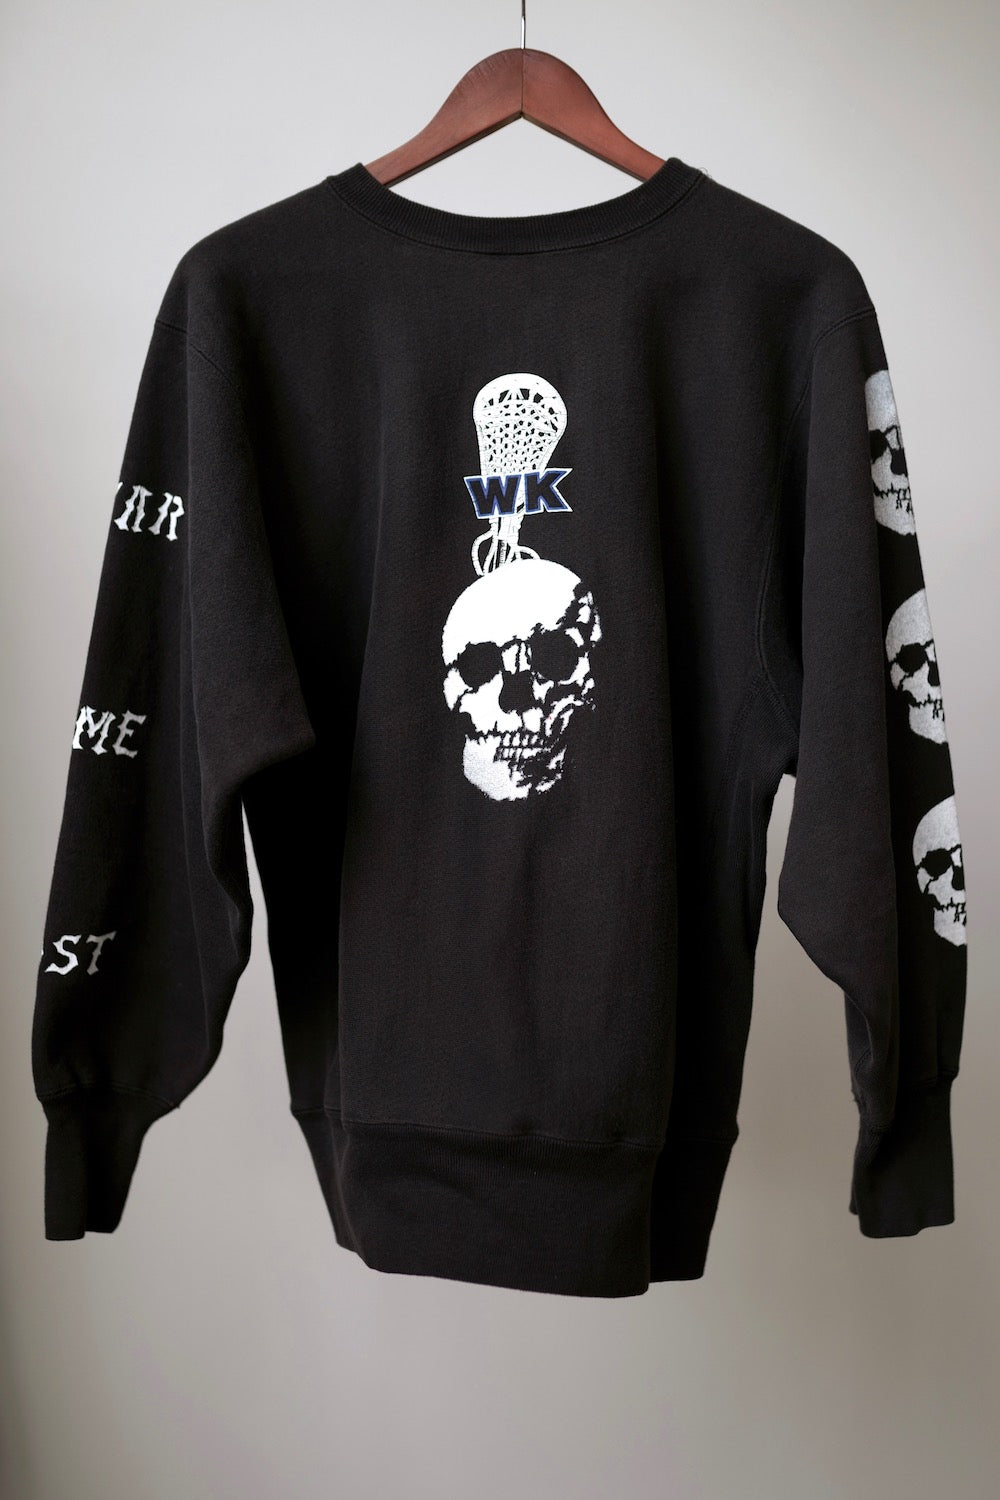 WSL Customized Vintage Kill Time Champion Sweatshirt